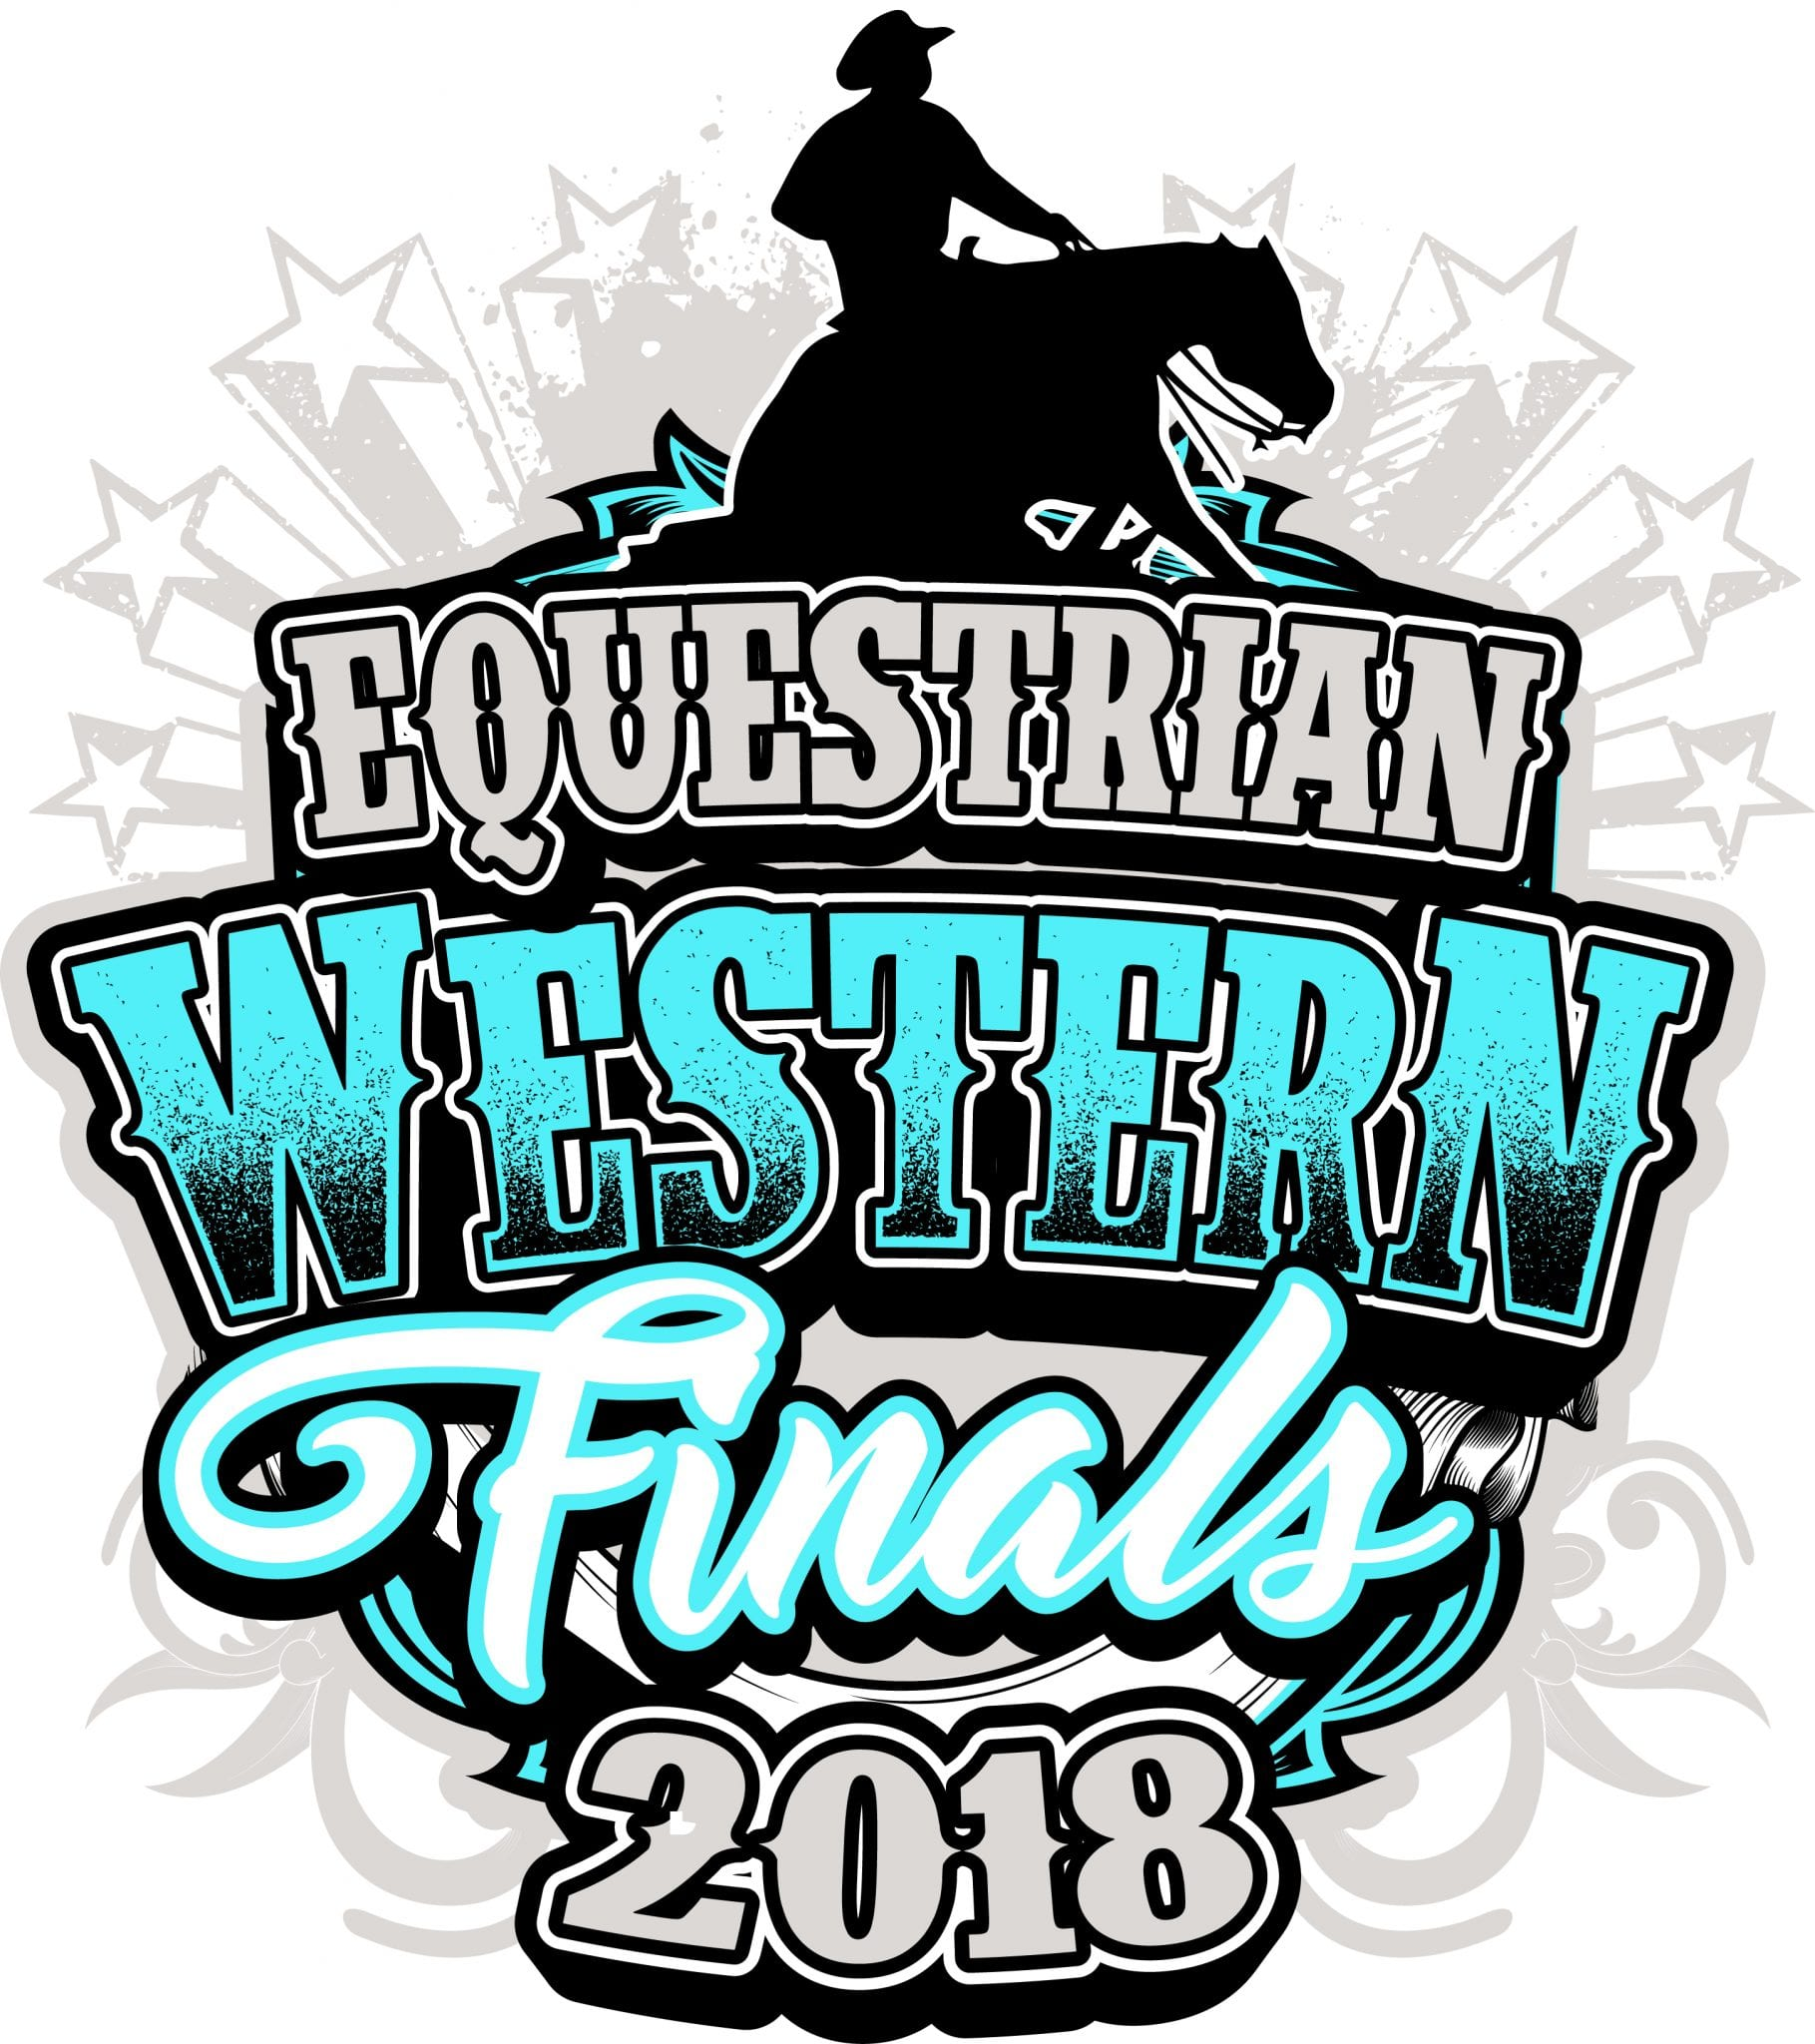 EQUESTRIAN WESTERN FINALS 2018 t-shirt vector logo design for print